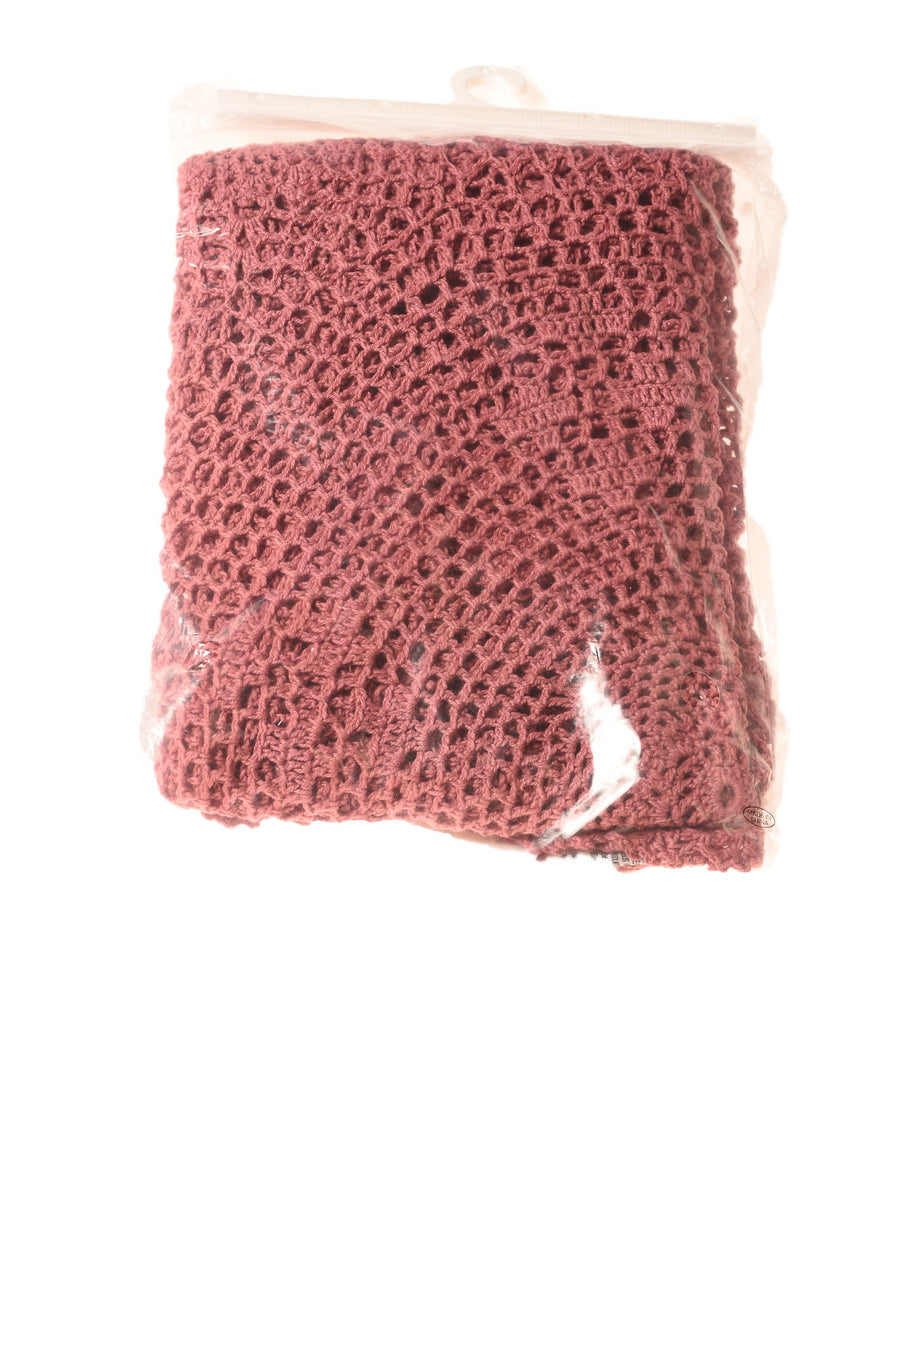 NEW L. Kee & Co. Crochet Table Topper N/A Mauve